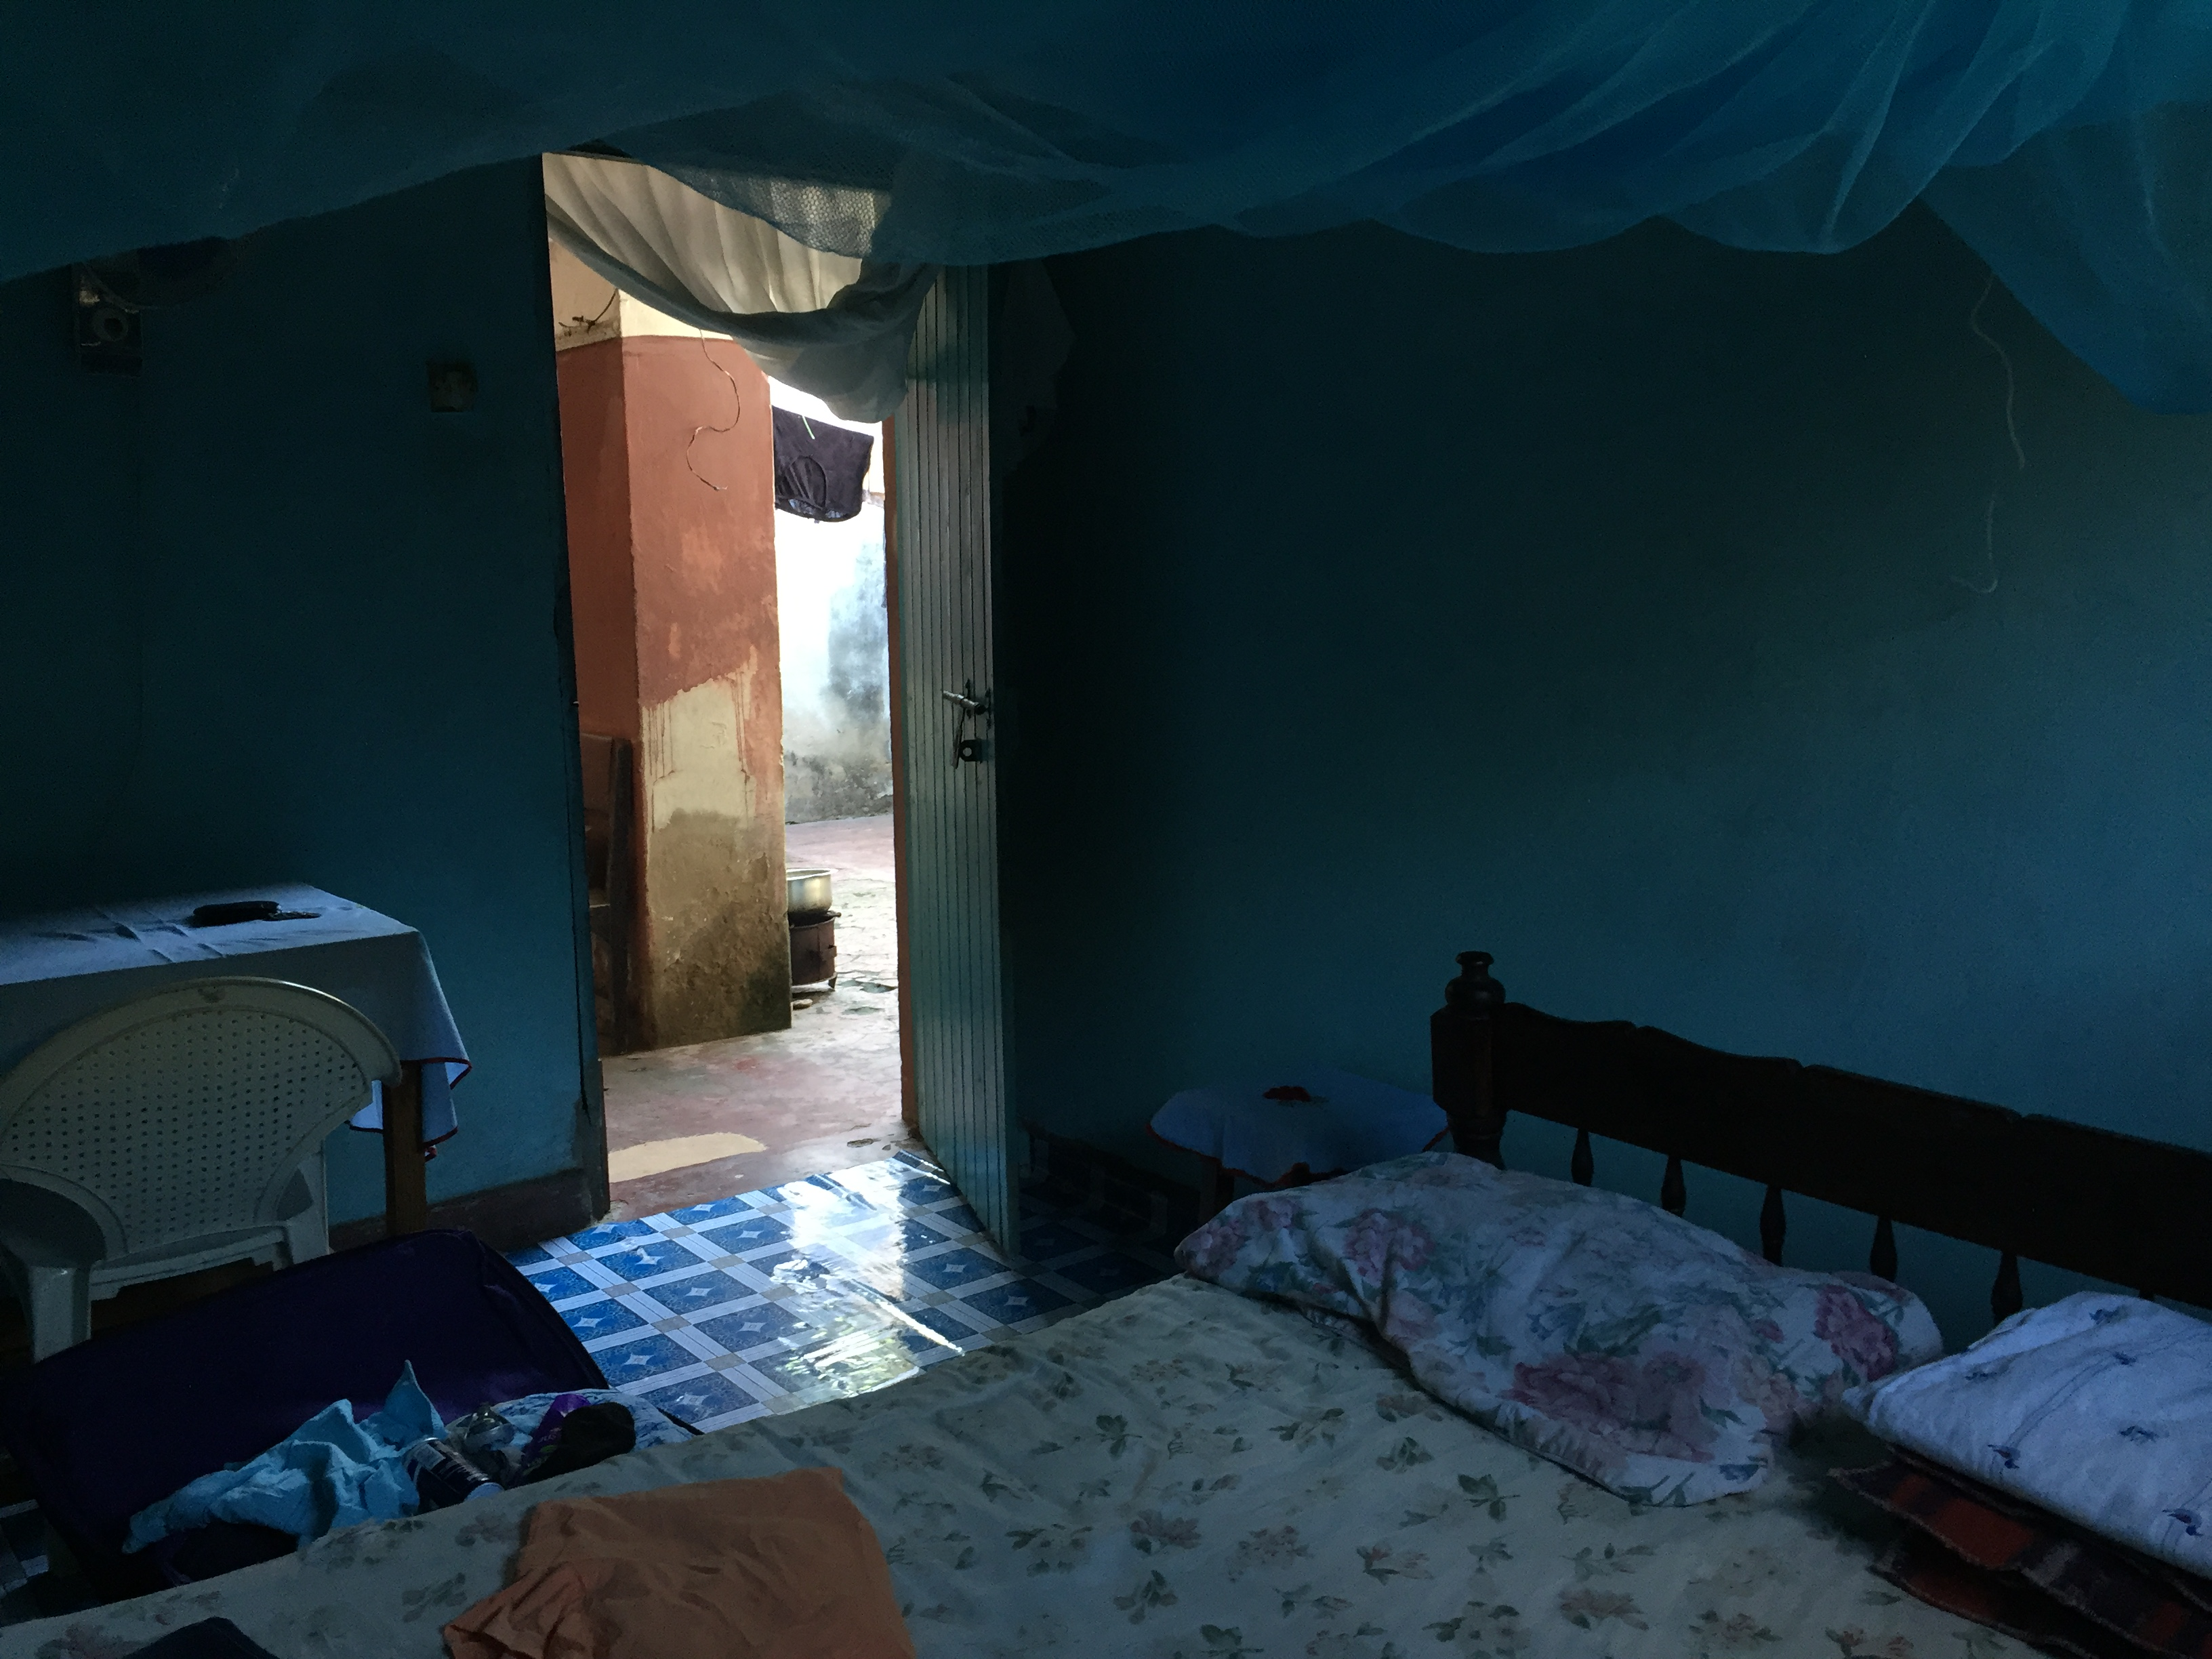 Dimly lit bedroom painted blue, showing bed with mosquito net hanging overtop and an open doorway to red concrete patio